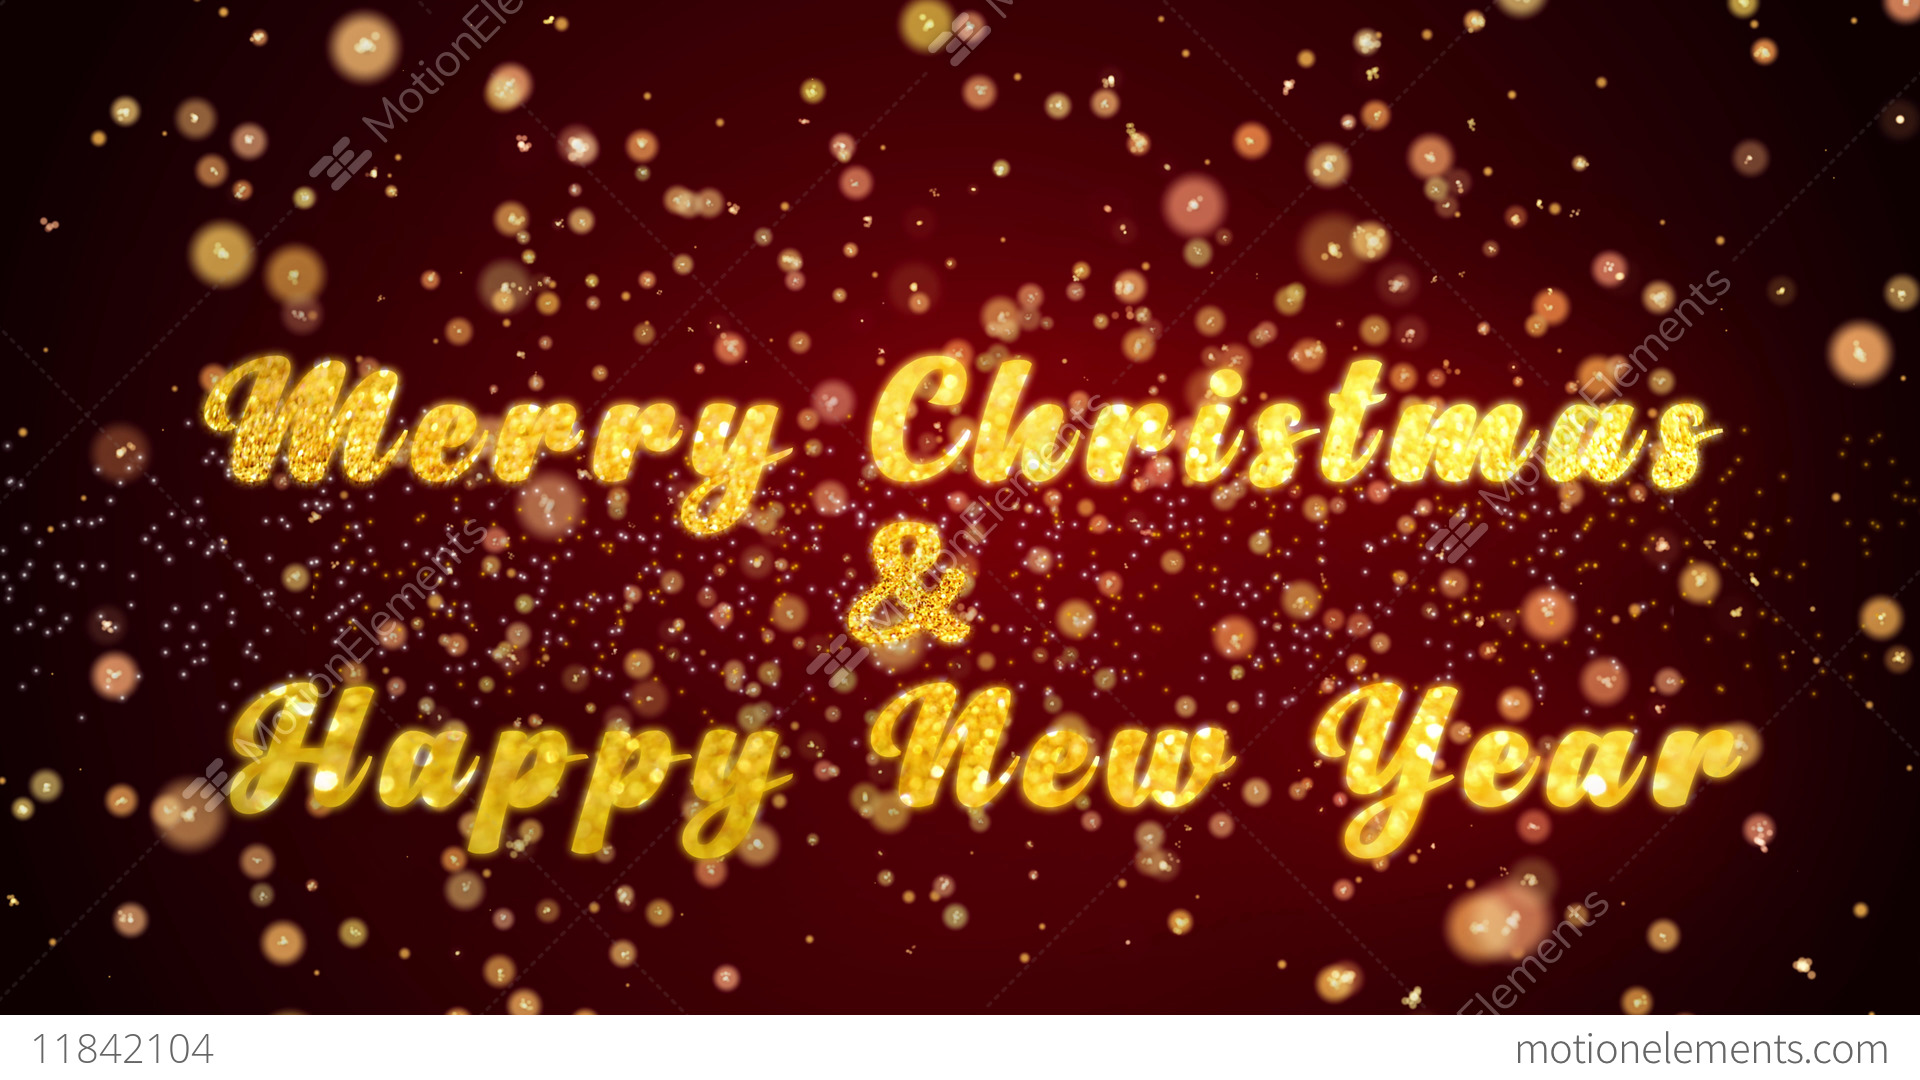 Merry Christmas Happy New Year Greeting Card Text Shiny Particles